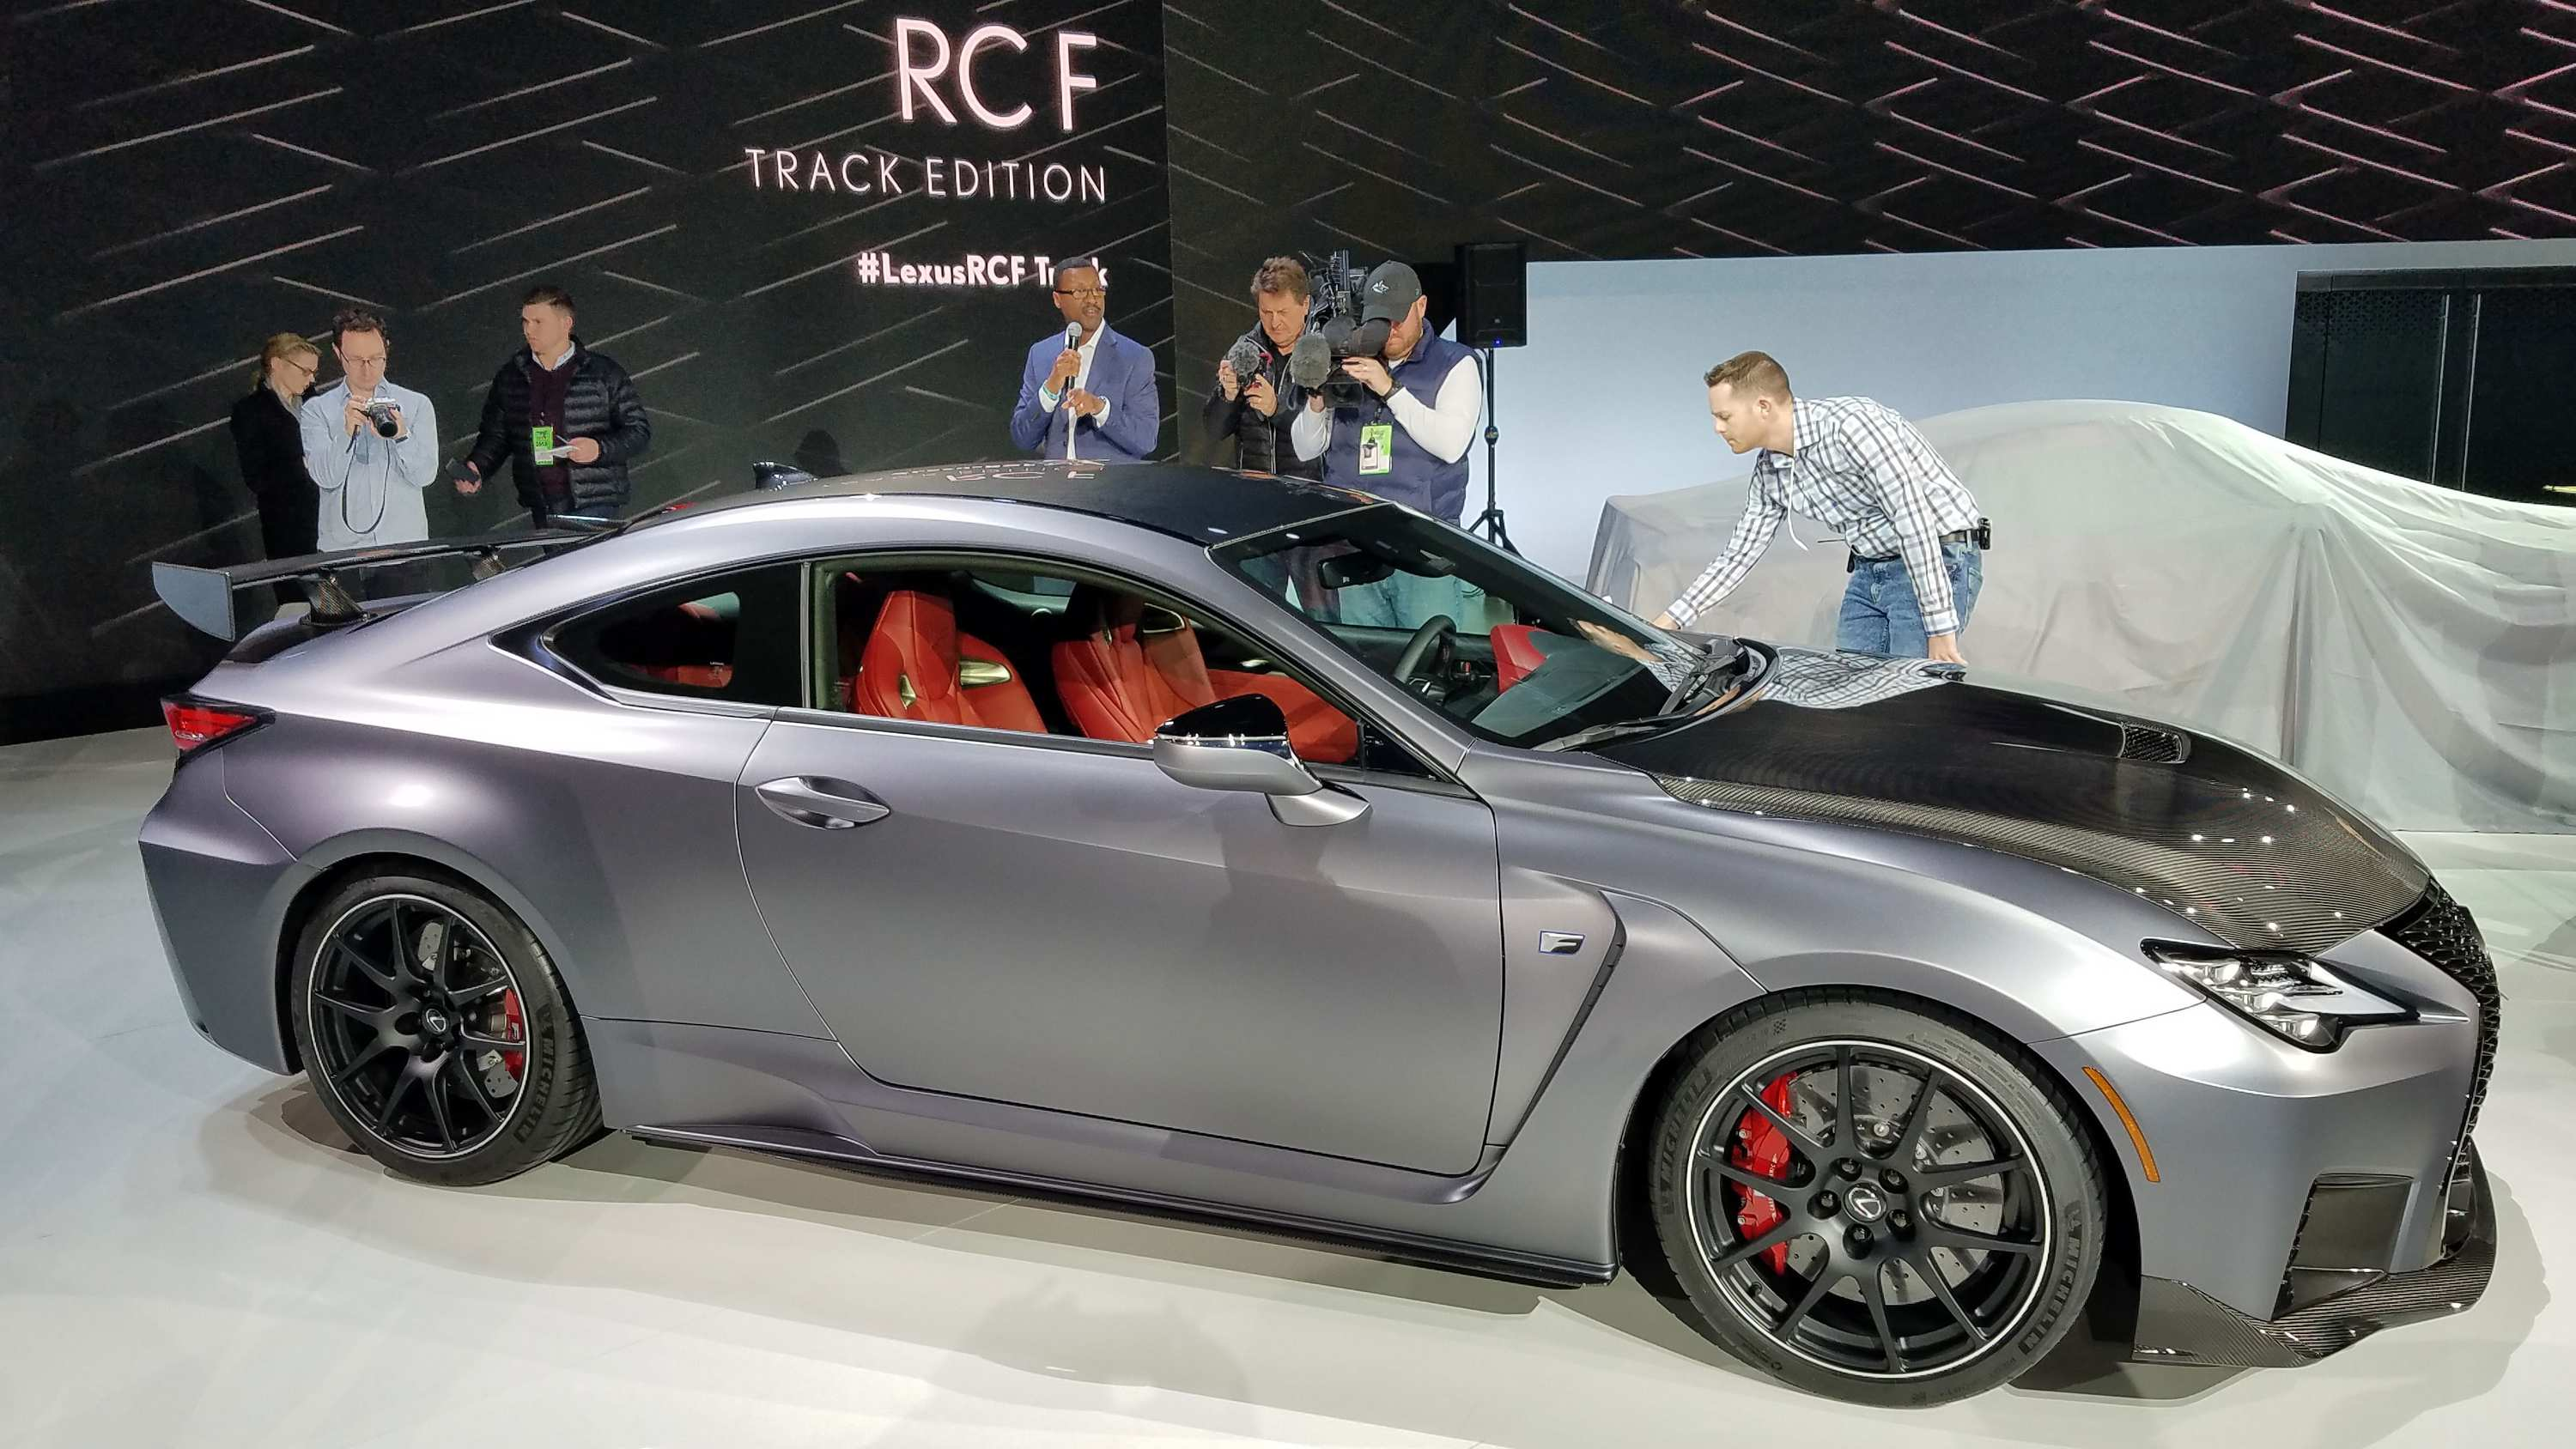 36 A 2020 Lexus Rc F Track Edition Prices